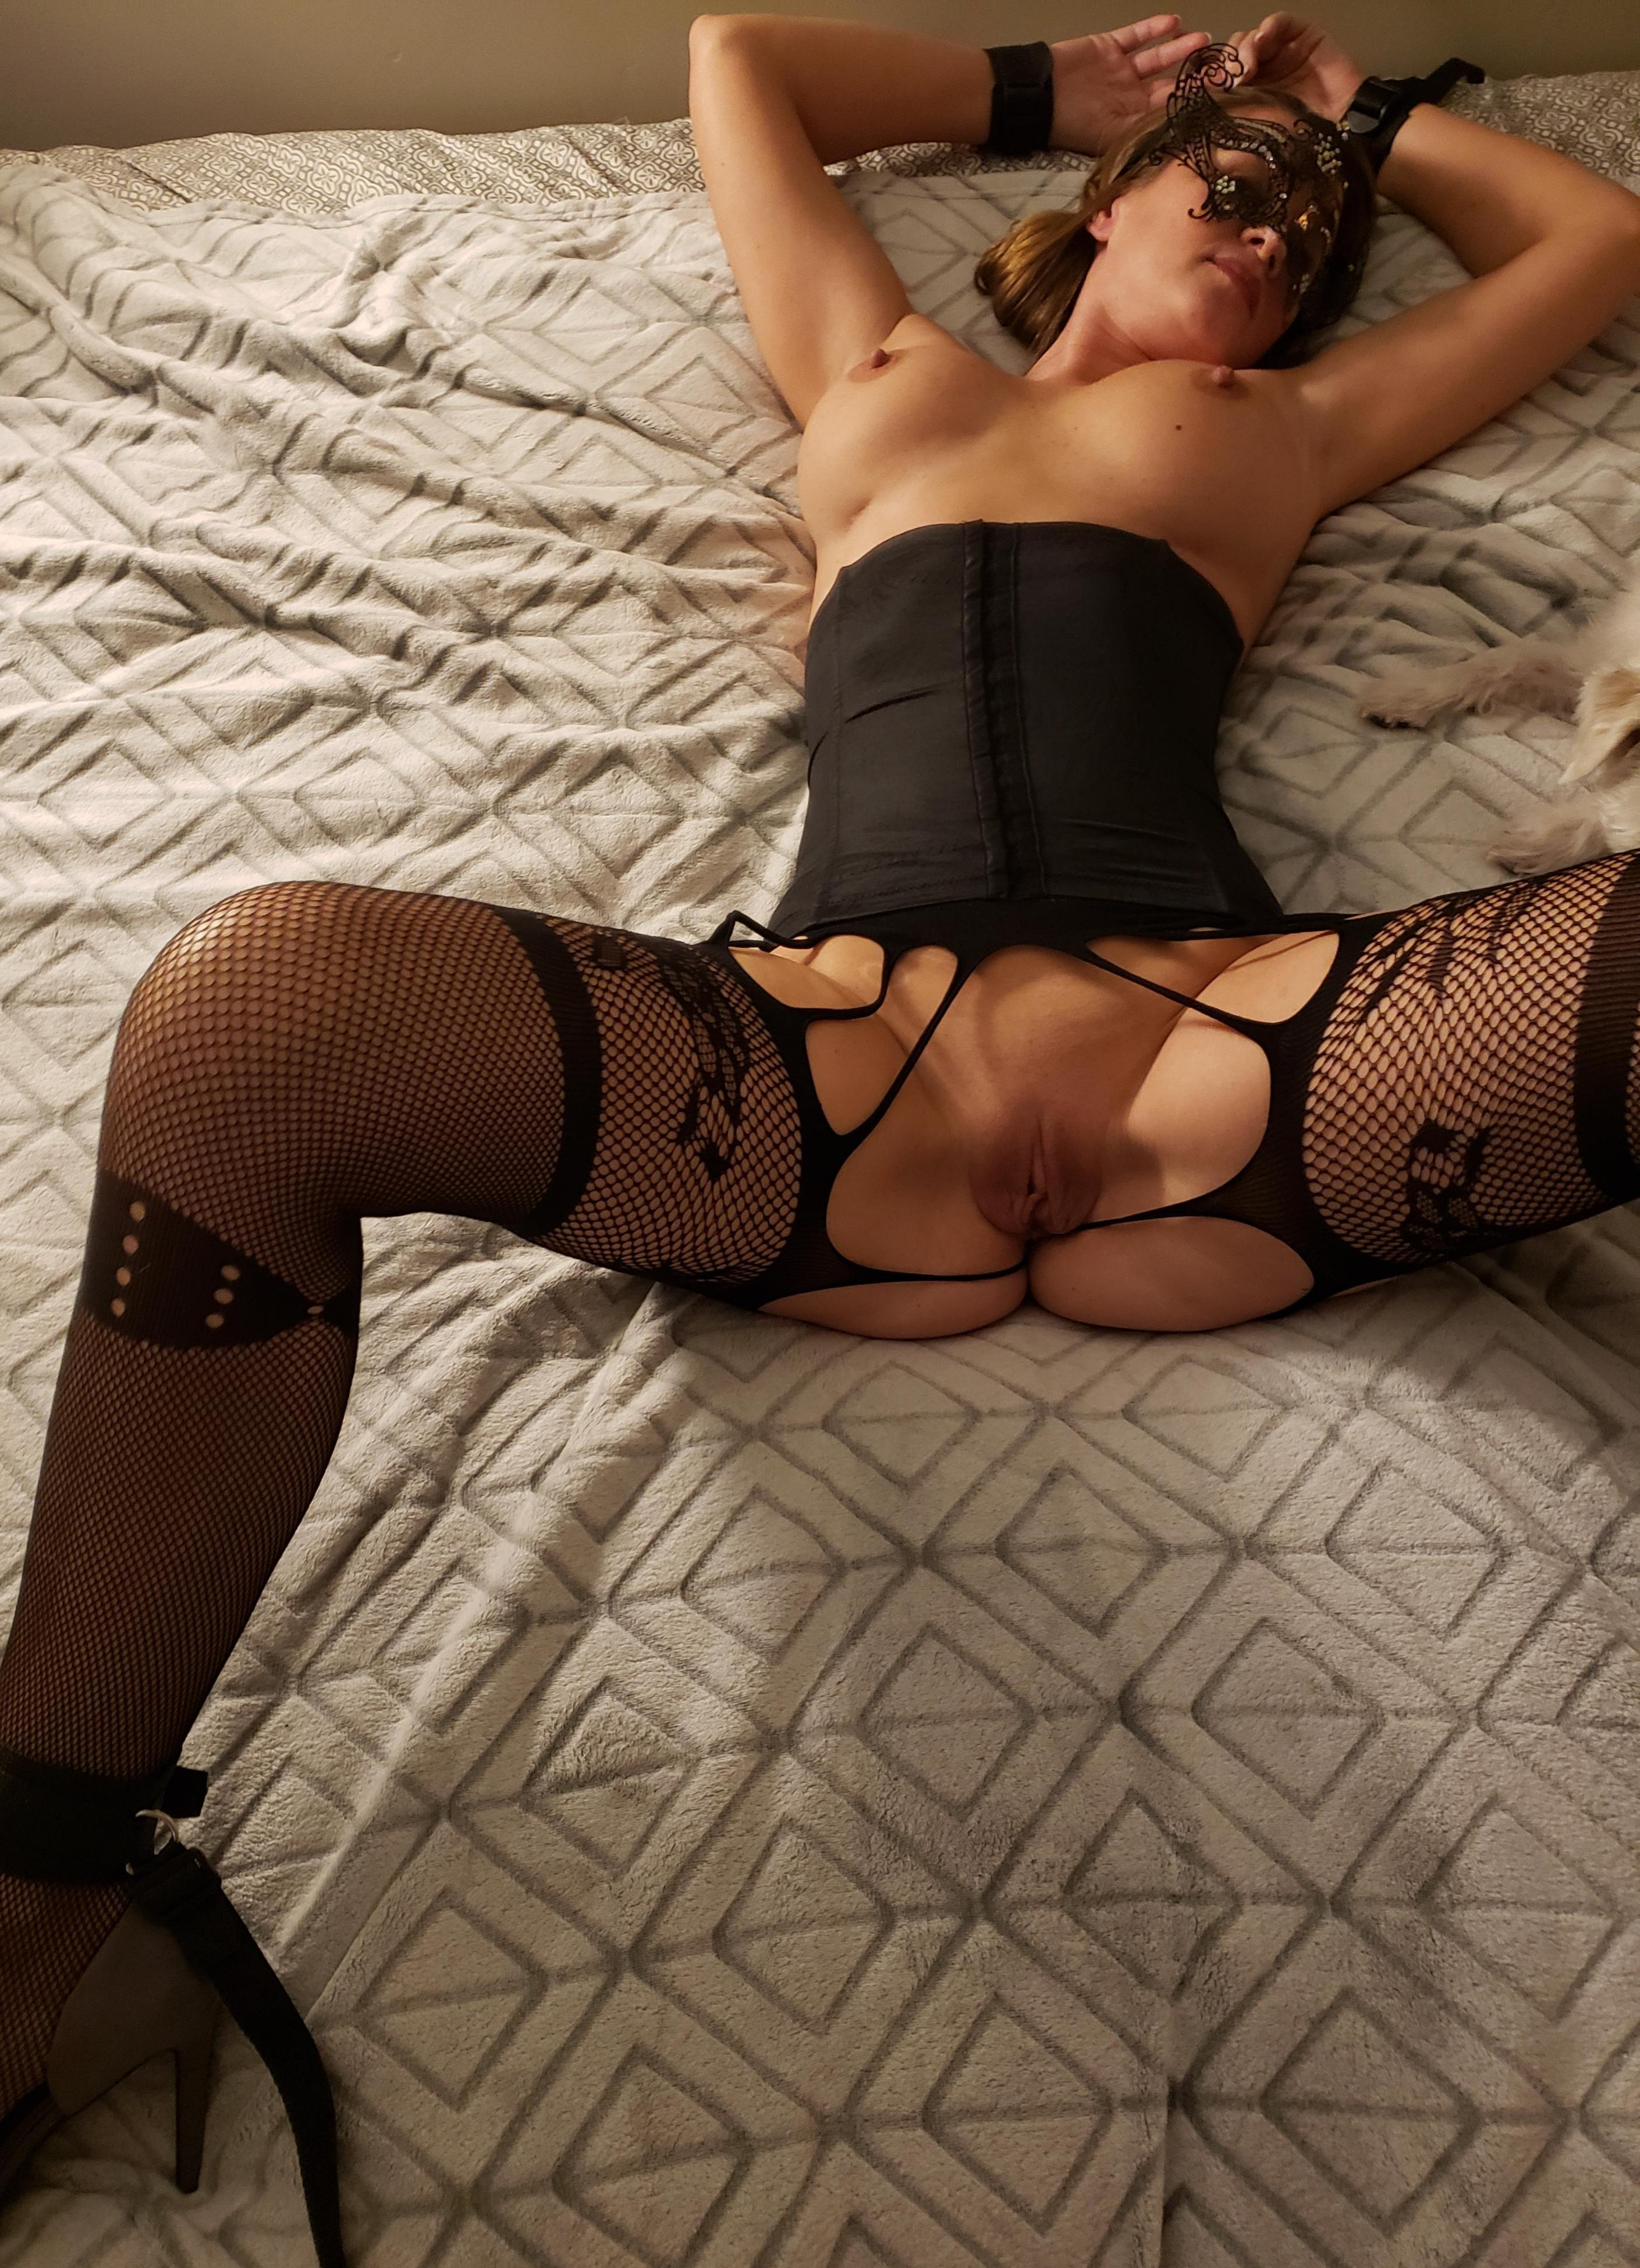 Amateur wife tied